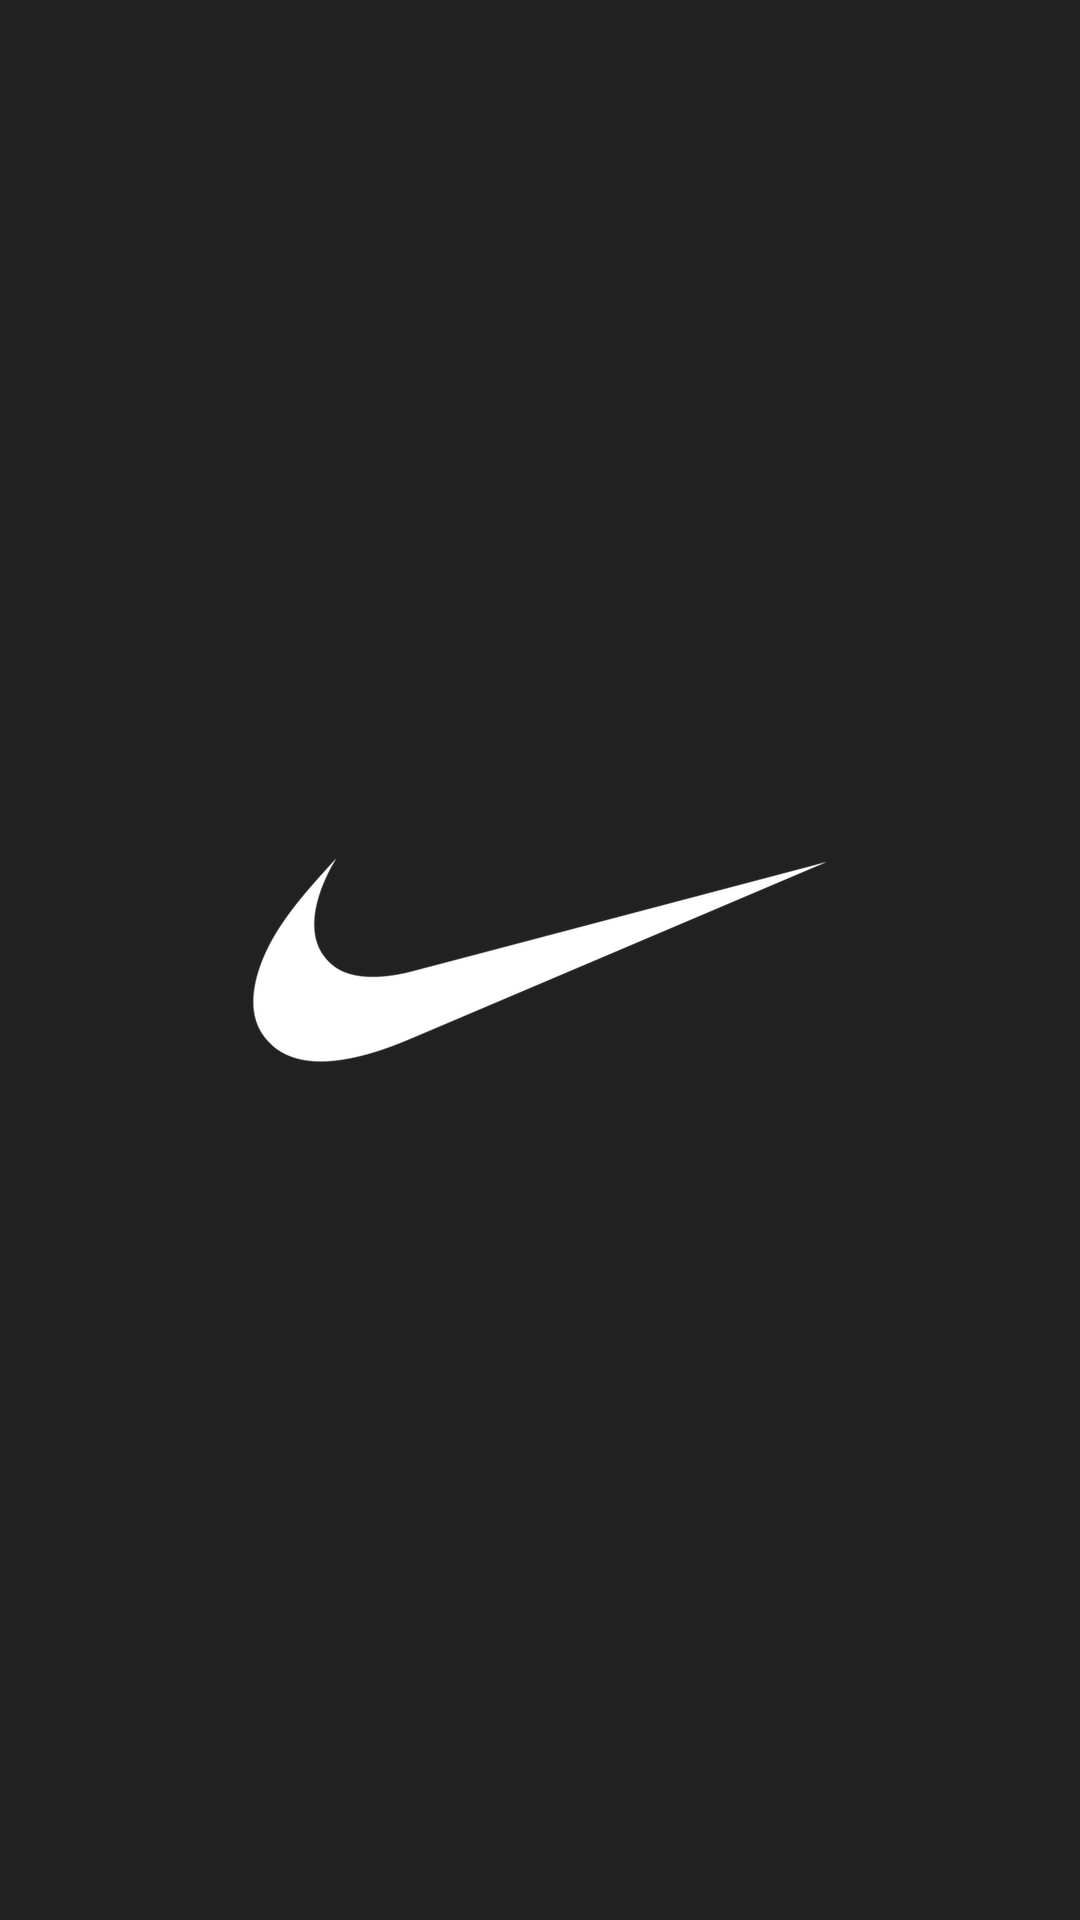 2018 年の nike logo iphone wallpaper ナイキ pinterest fond